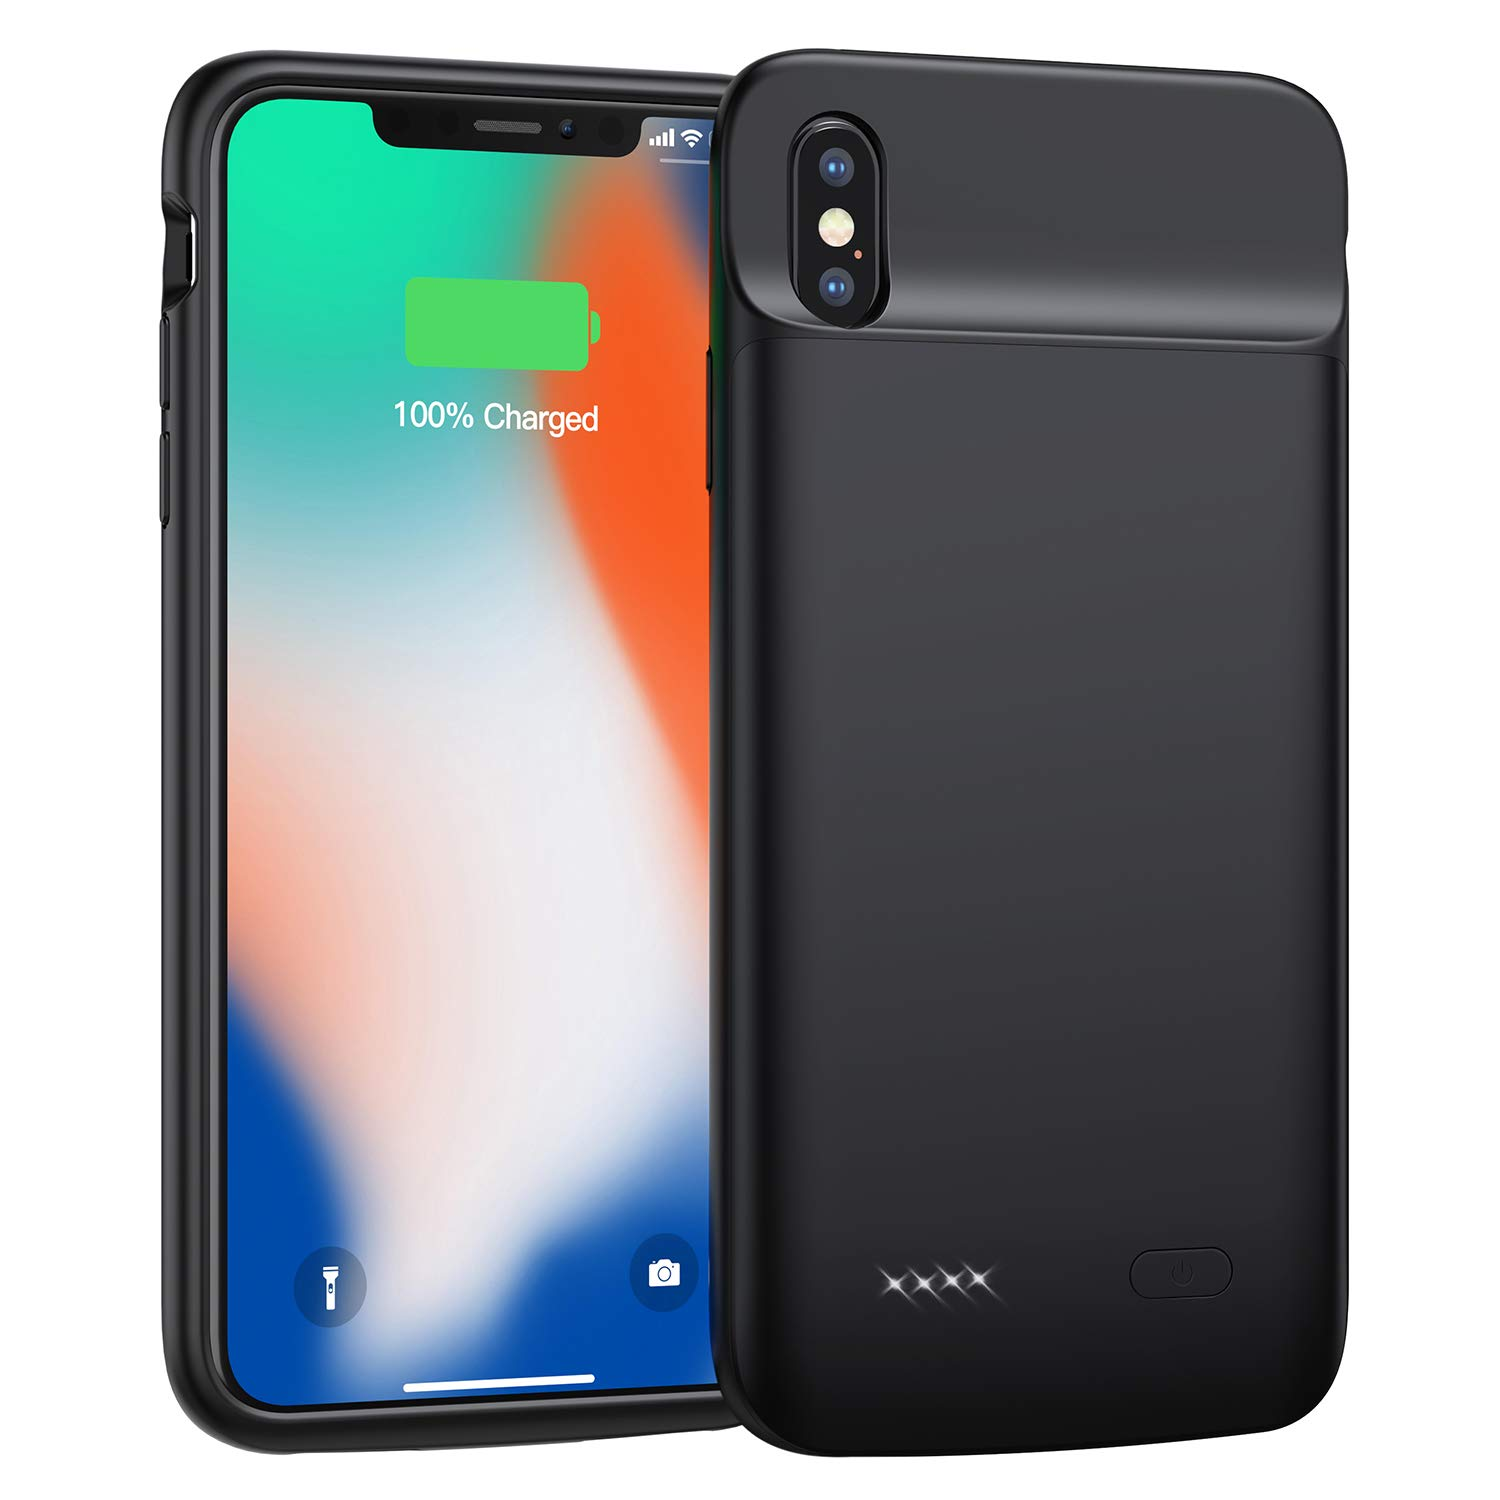 Funda Con Bateria de 4100mah para Apple Iphone X/Xs SWALLER [7VGJDGKZ]